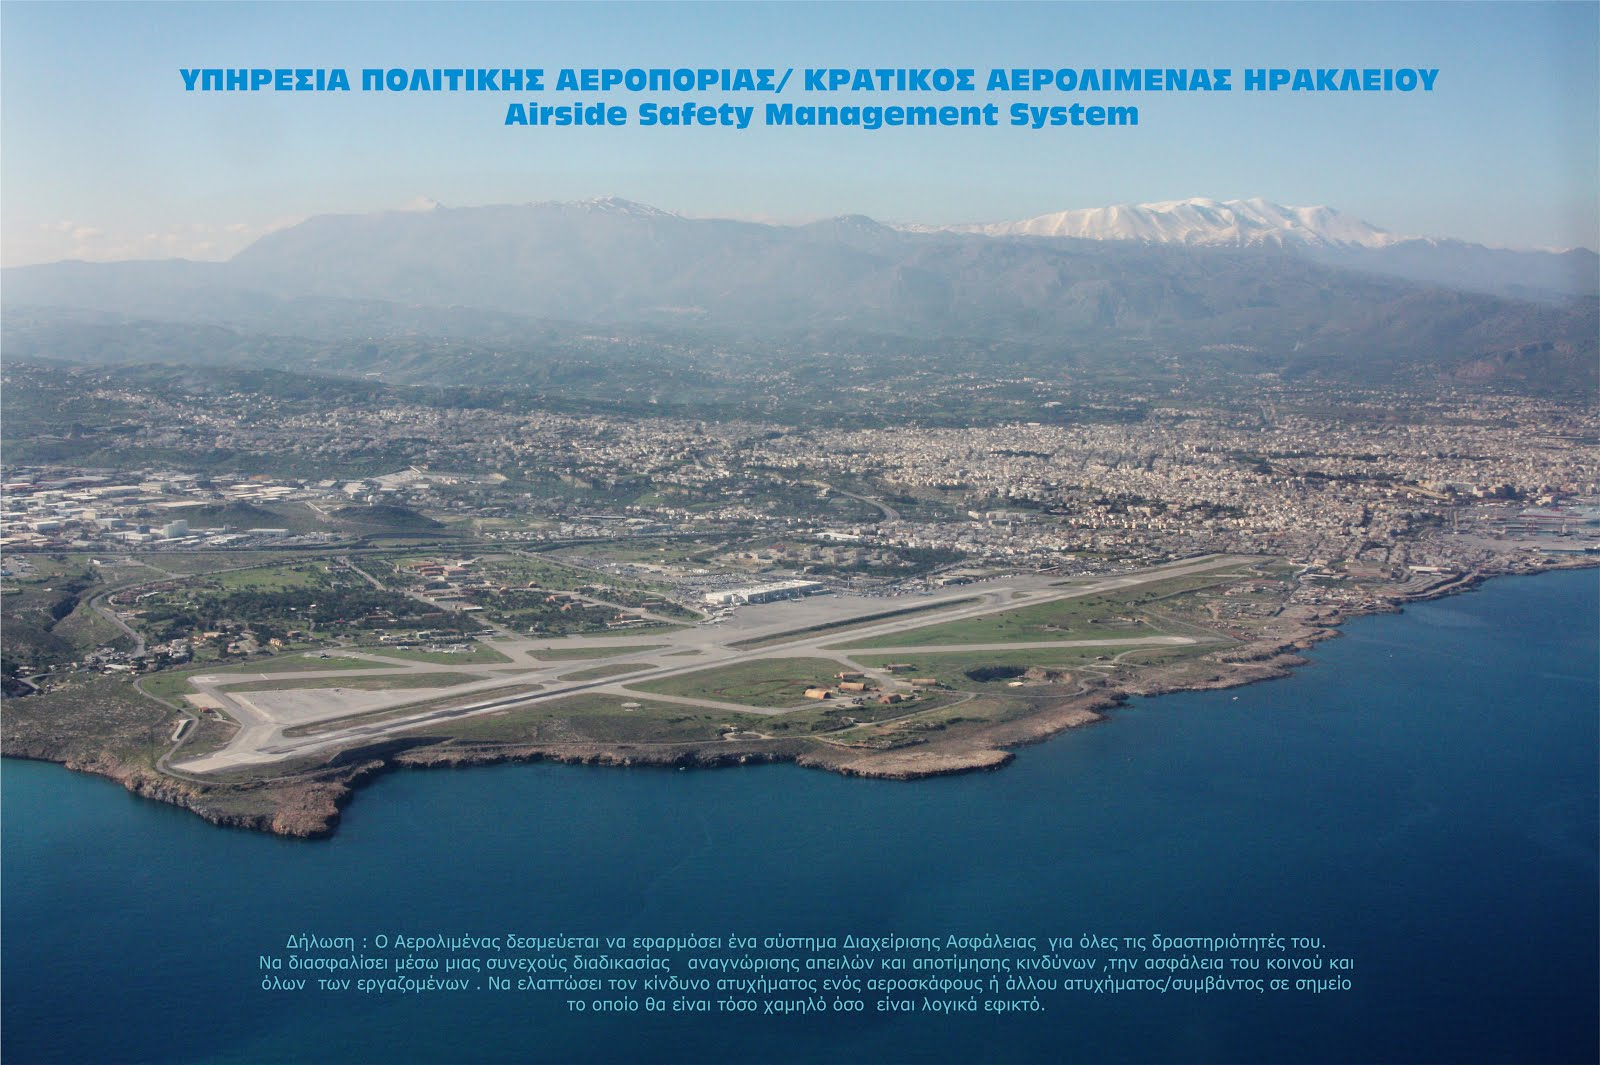 ΥΠΑ-ΚΑΗΚ / Airside Safety Management System